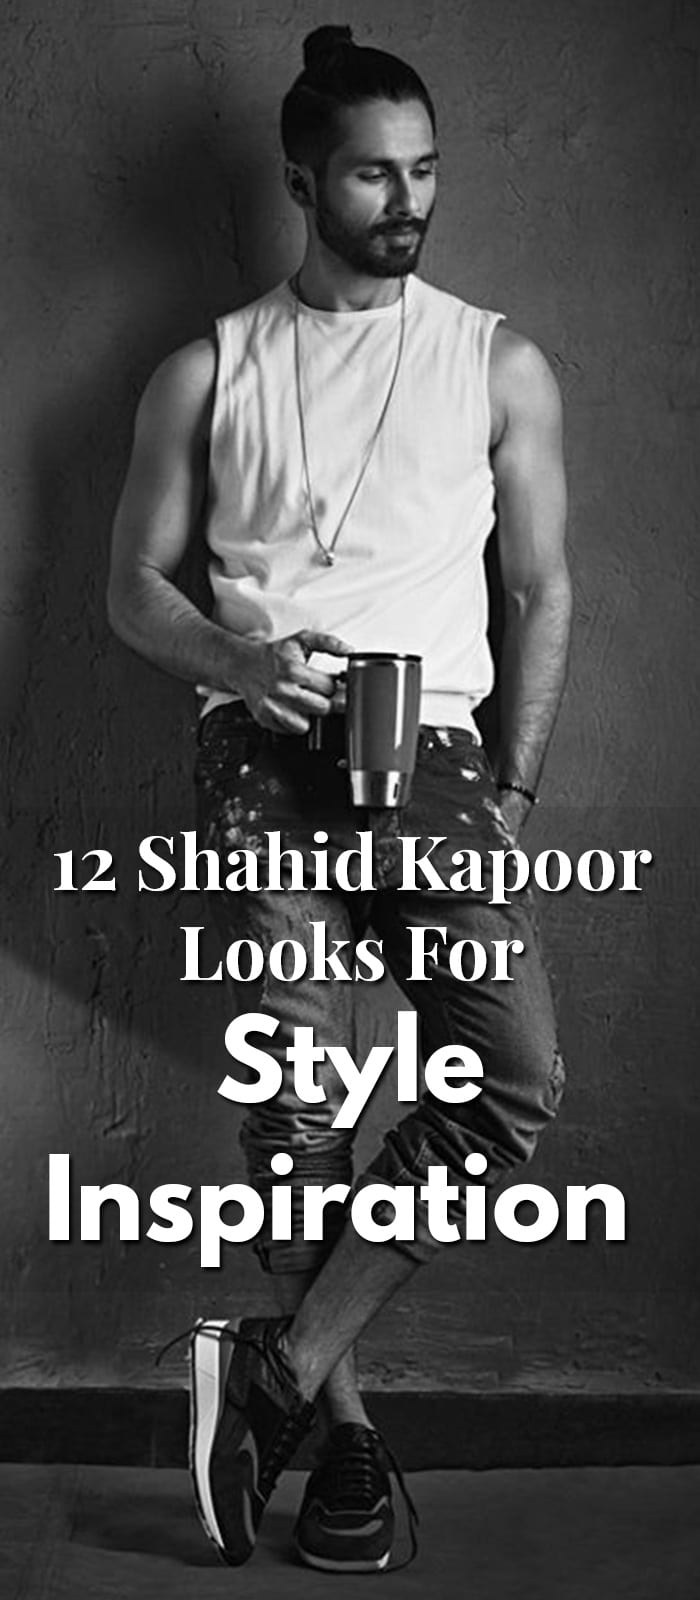 12 Shahid Kapoor Looks For Style Inspiration